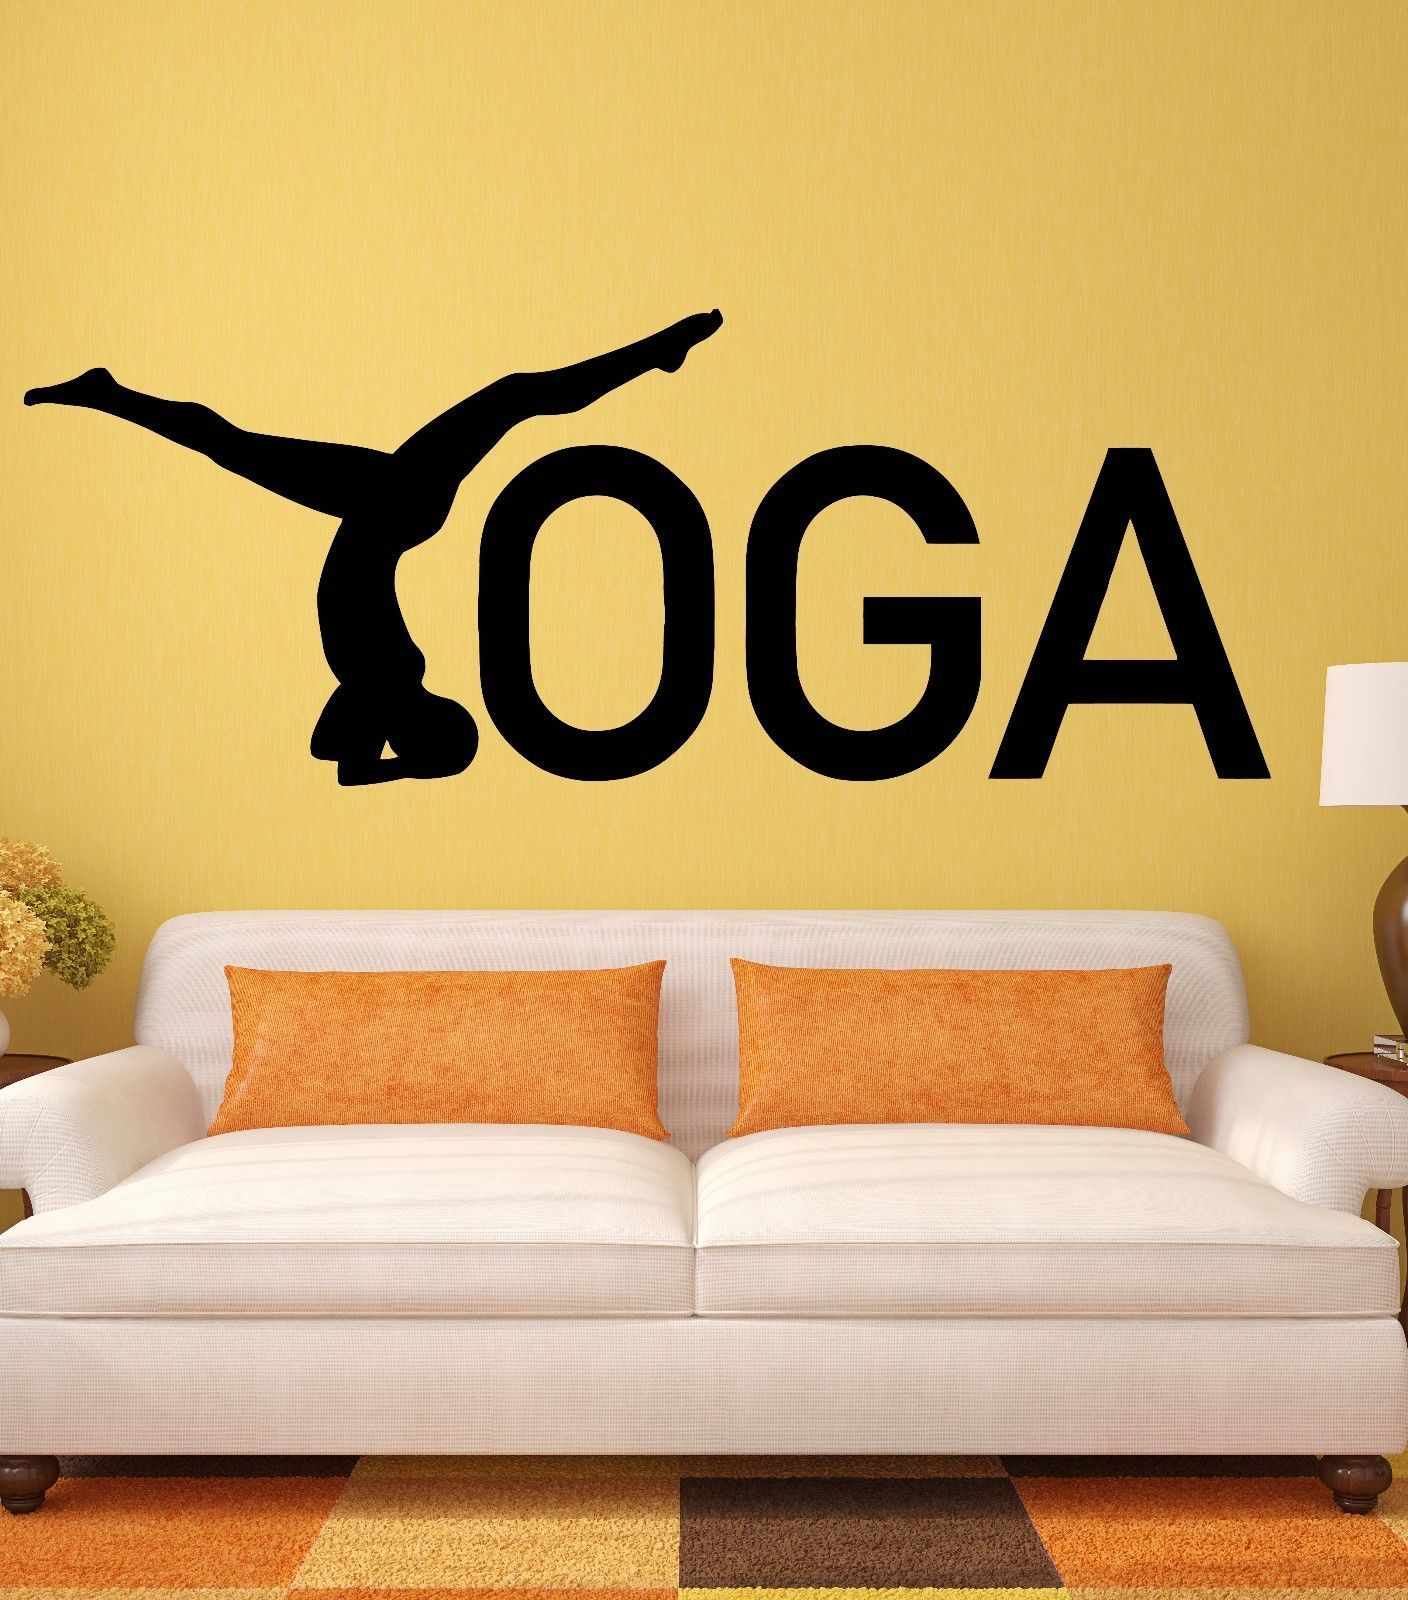 Popular Yoga Wall Stickers-Buy Cheap Yoga Wall Stickers lots from ...